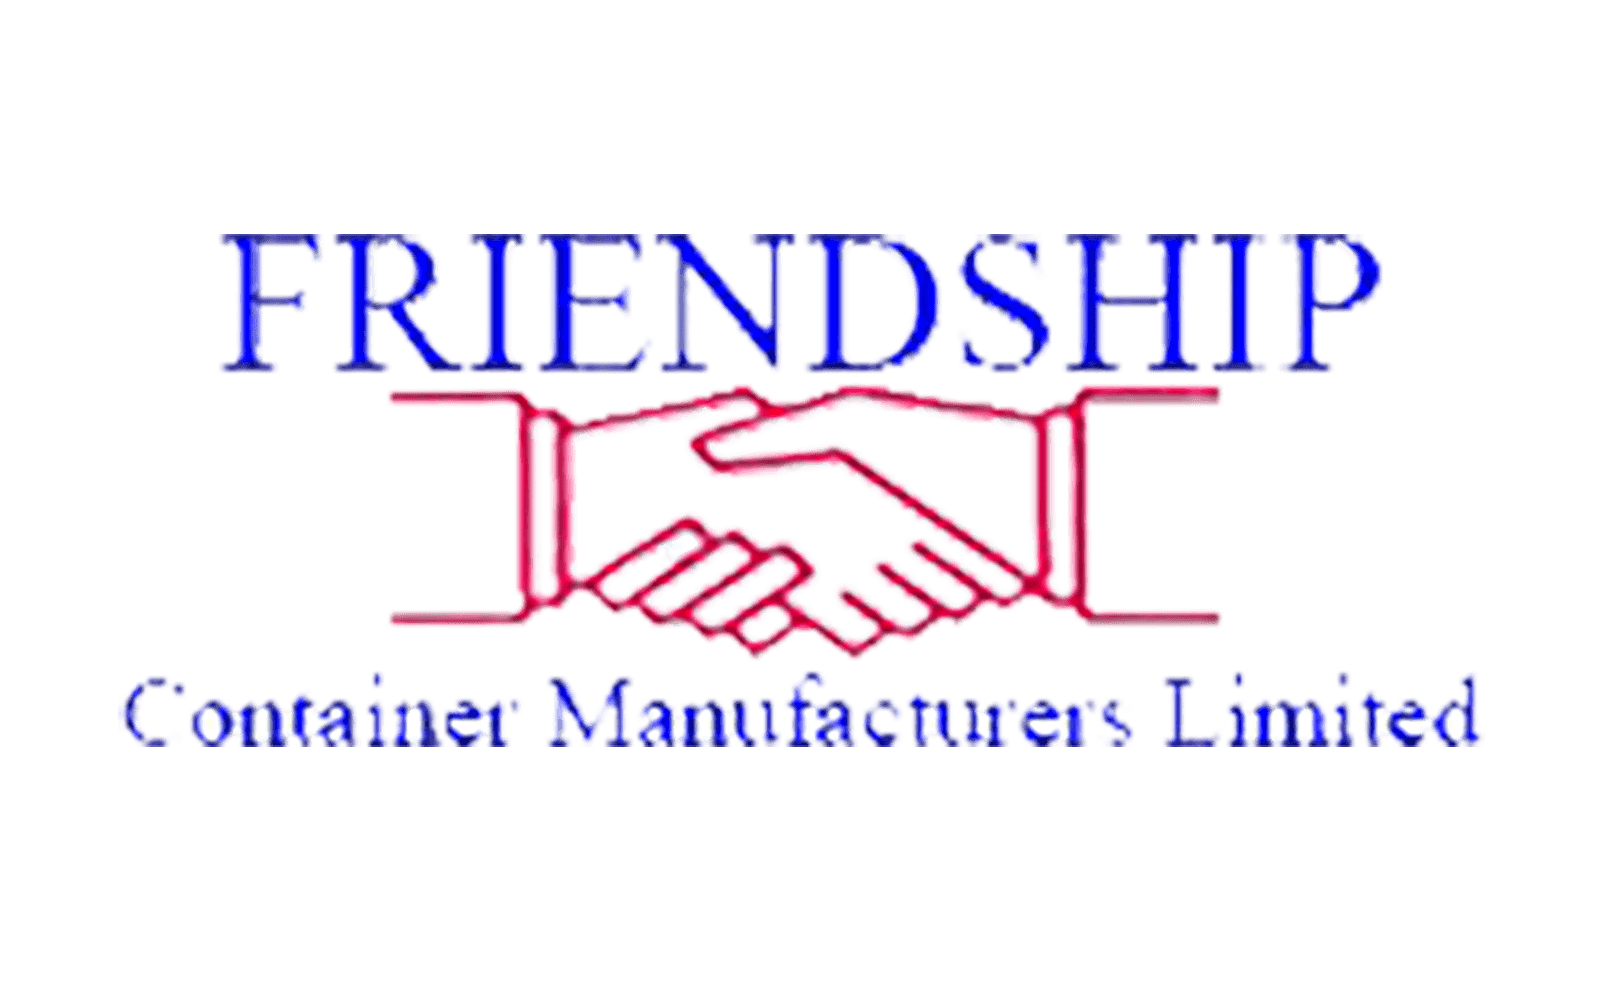 Friendship Container Manufacturers Ltd